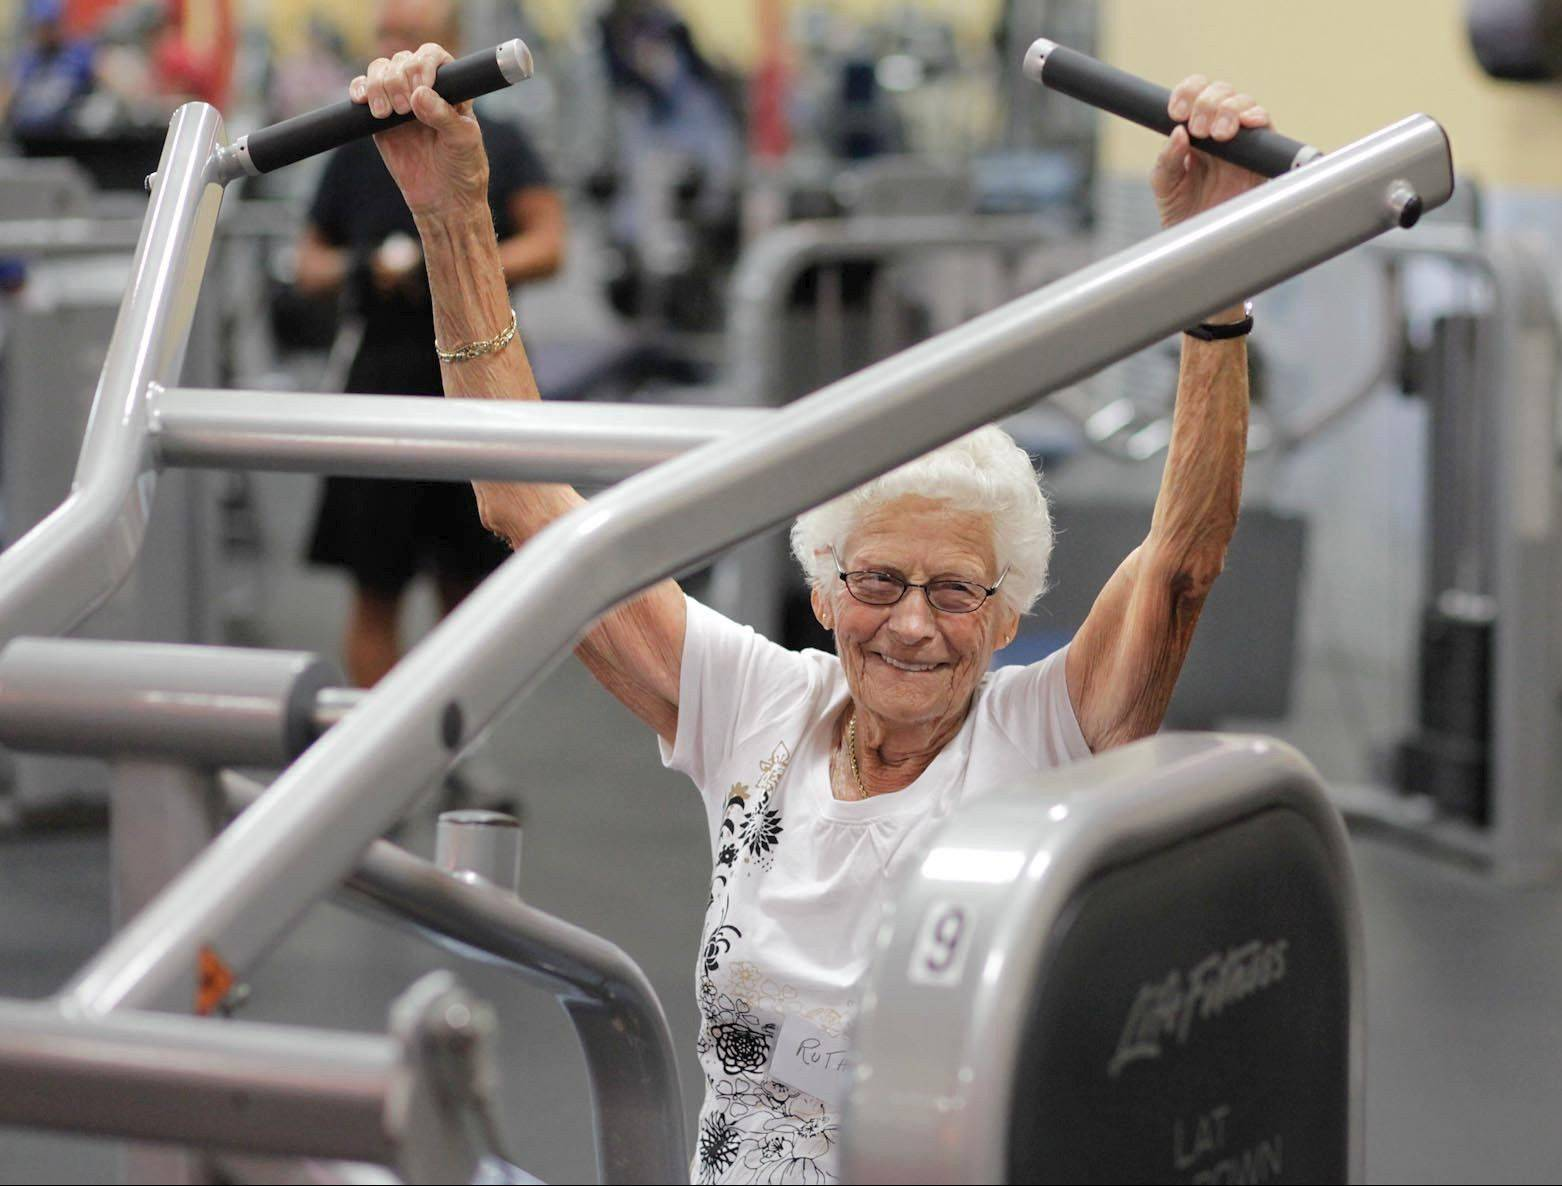 Ruth Myers, 99, makes a point to exercise nearly every day.